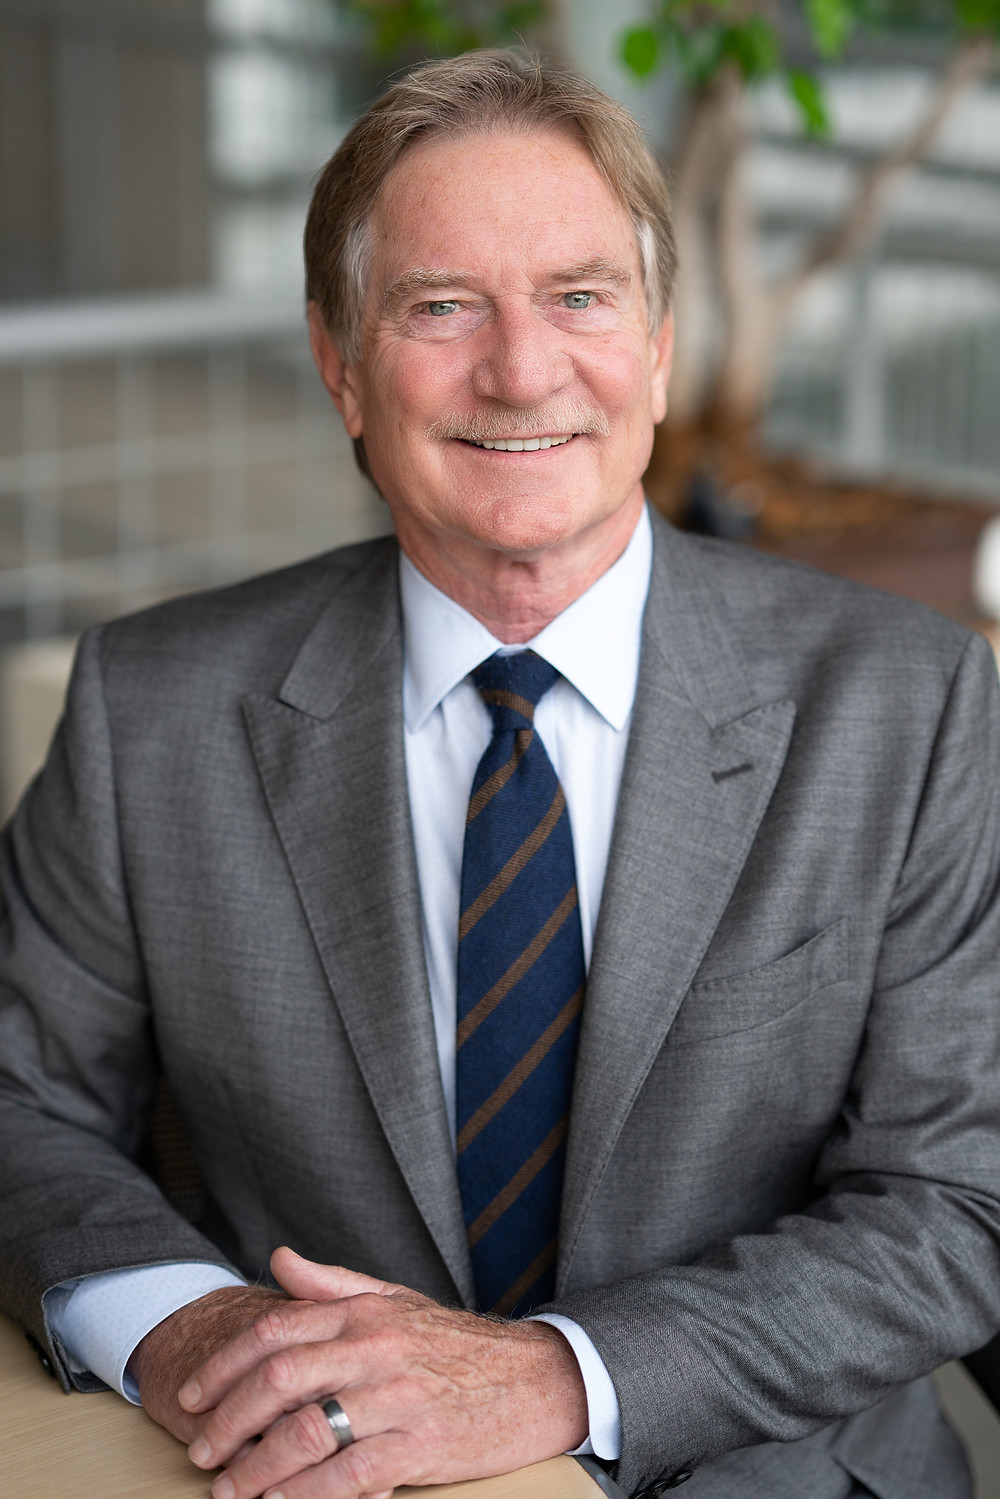 An older man dressed in a business suit and tie smiling at camera for professional portrait